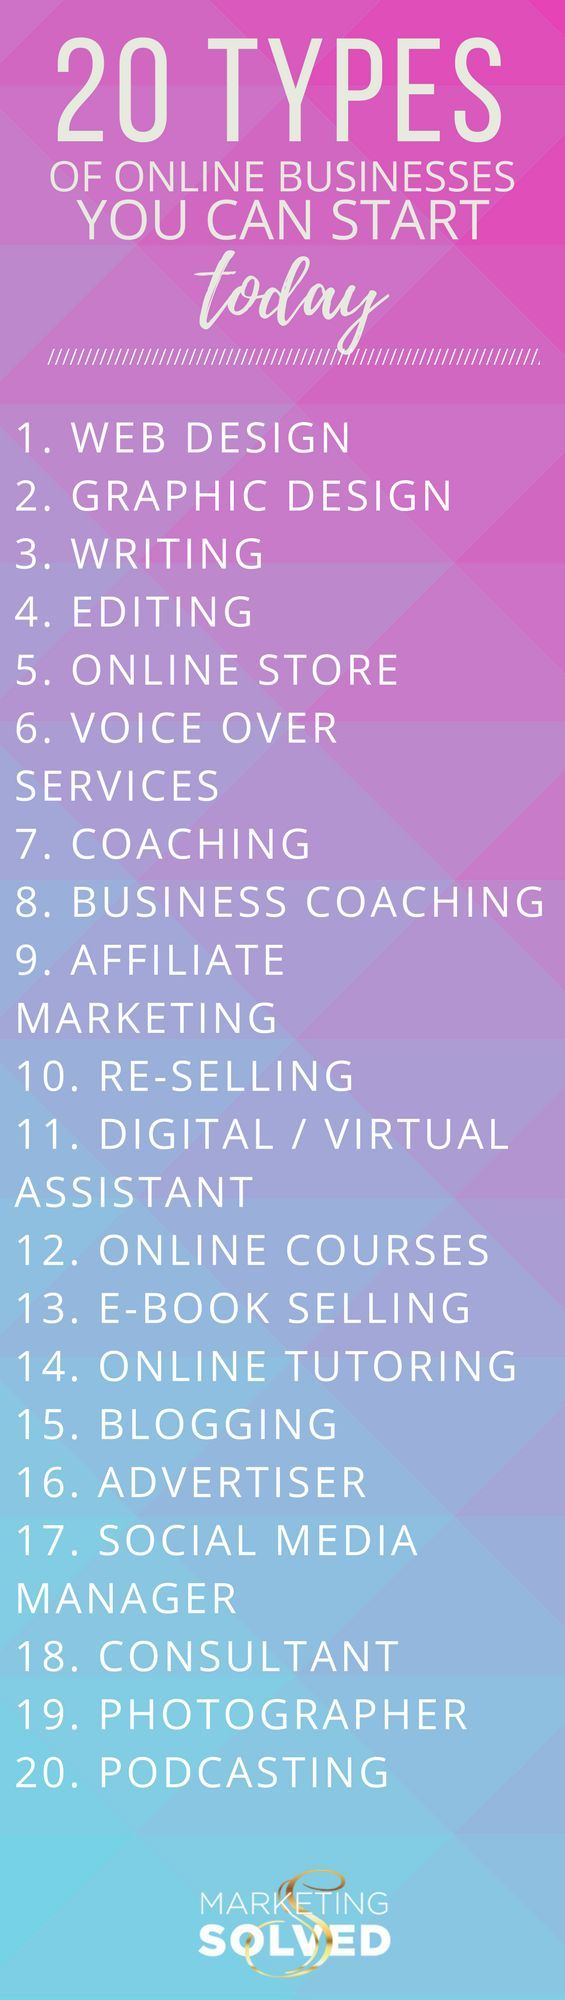 20 Types of Online Businesses You Can Start Today Online